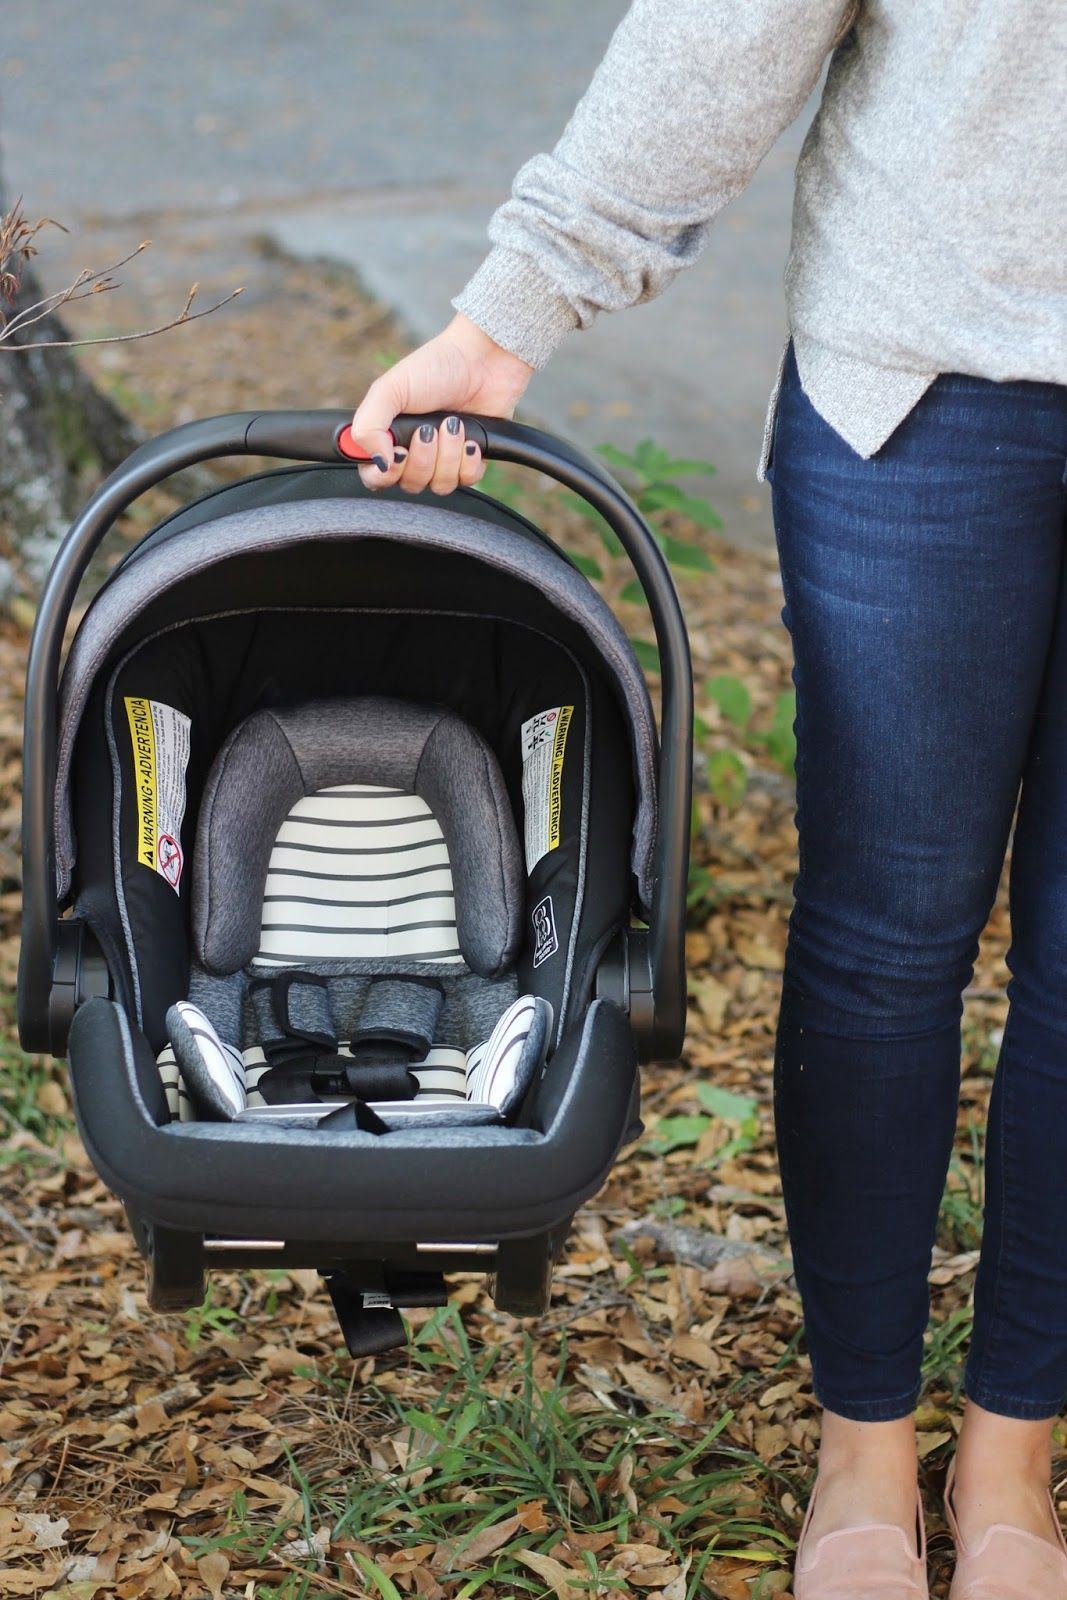 A Mom Confession with the Graco SnugLock 35 DLX Infant Car Seat